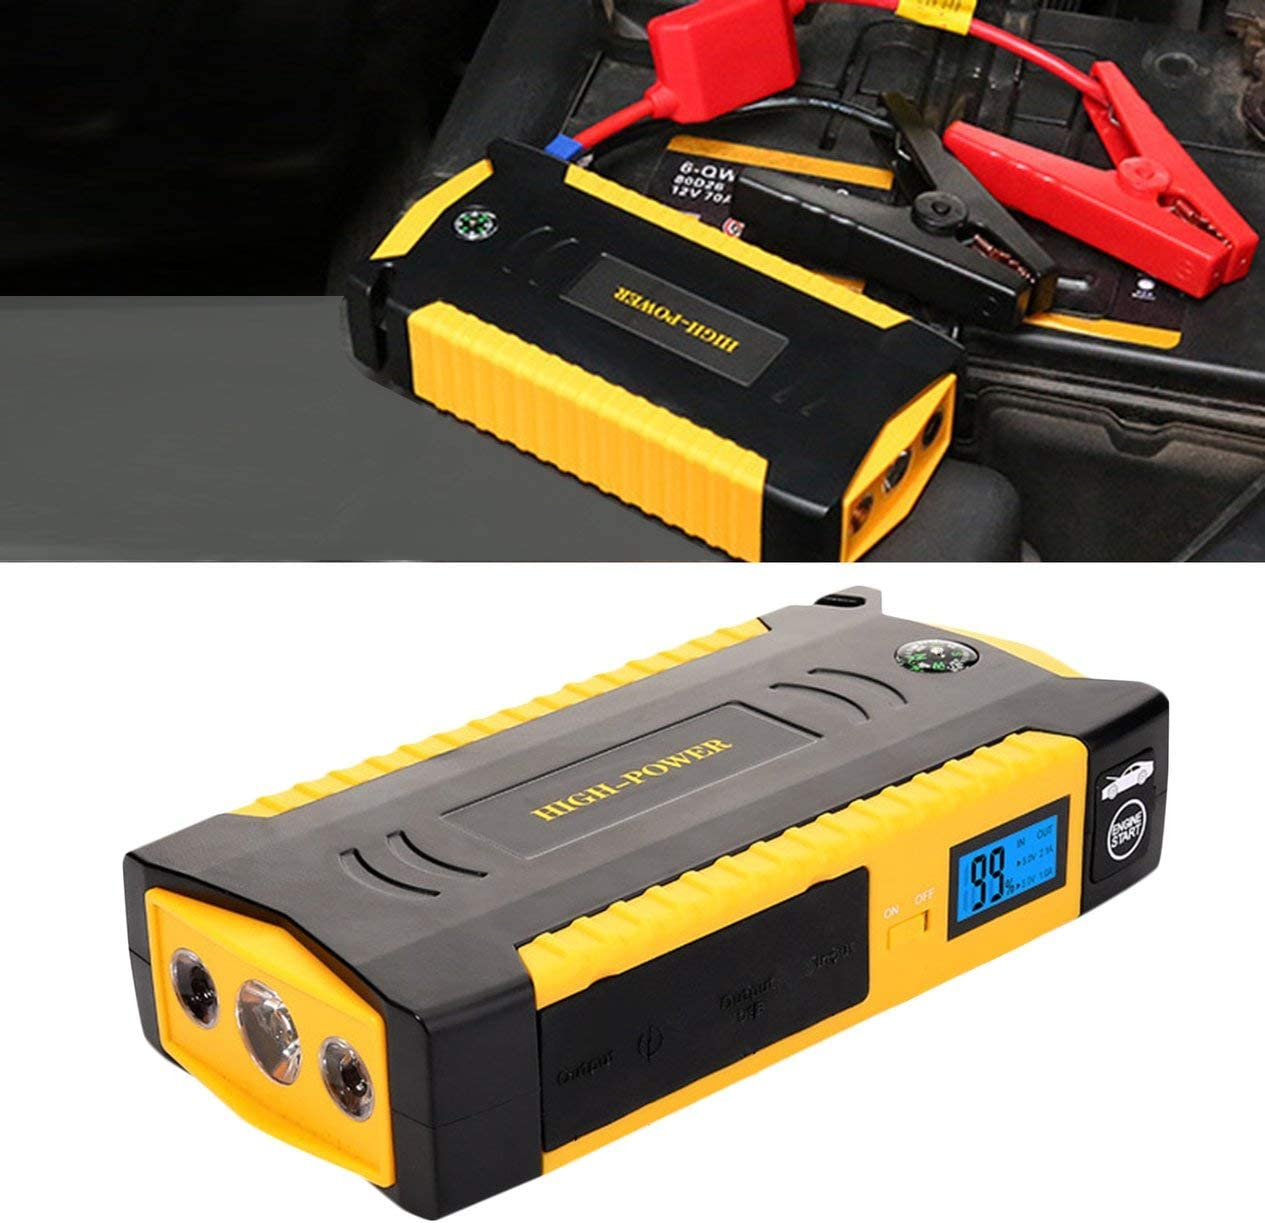 Multifunctional Jump Starter Car Battery Power Bank Emergency Auto Booster Pack Vehicle Jump Start 1800Mah Peak Current-yellow /& black BCVBFGCXVB